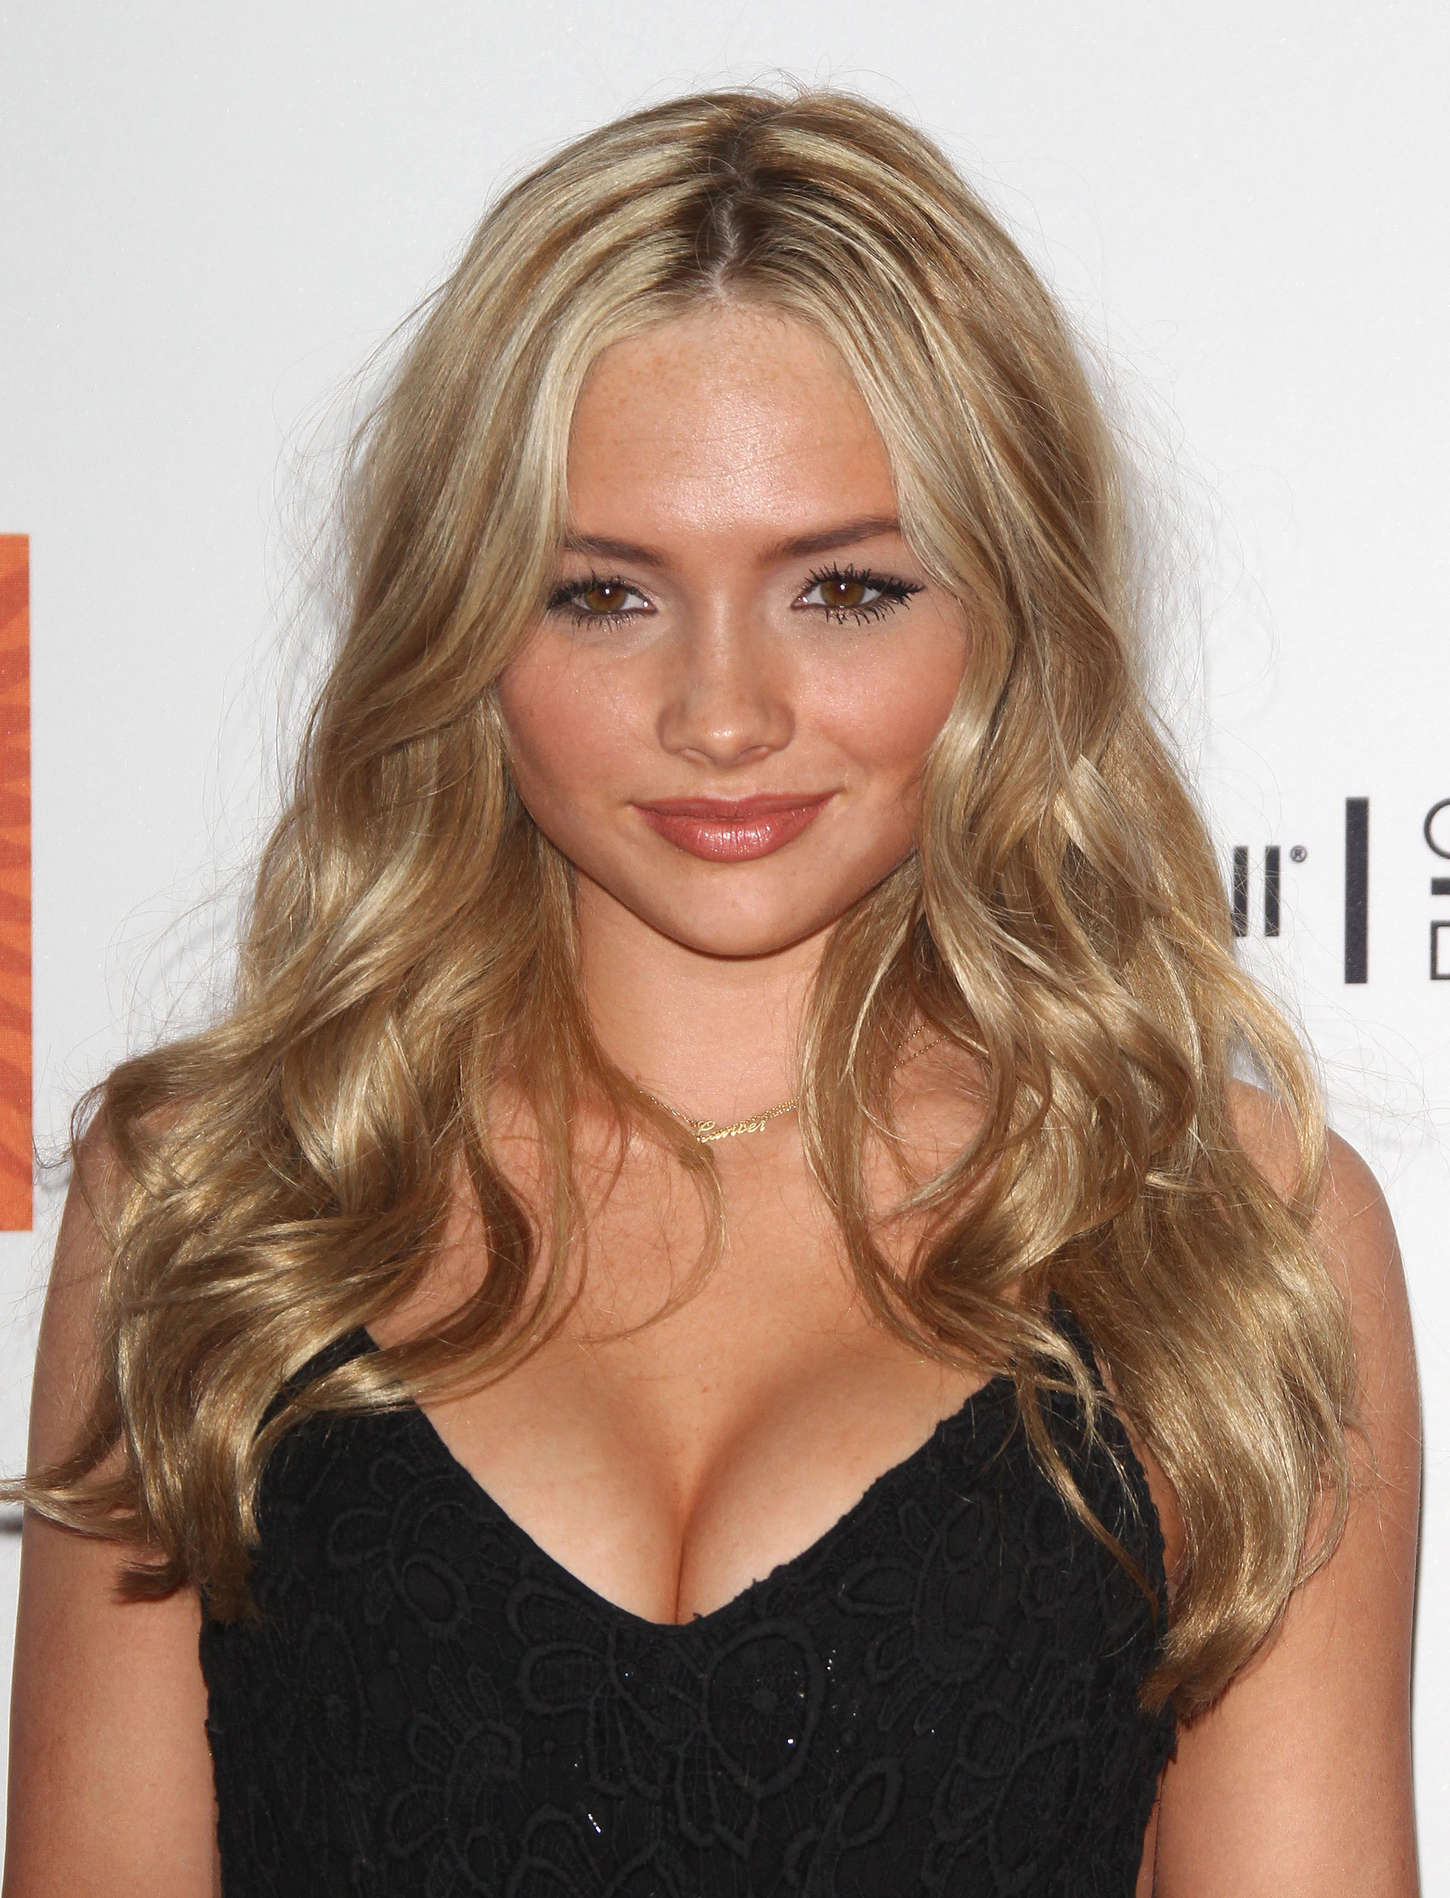 Natalie Alyn Lind 719411 W on wizards waverly place 07